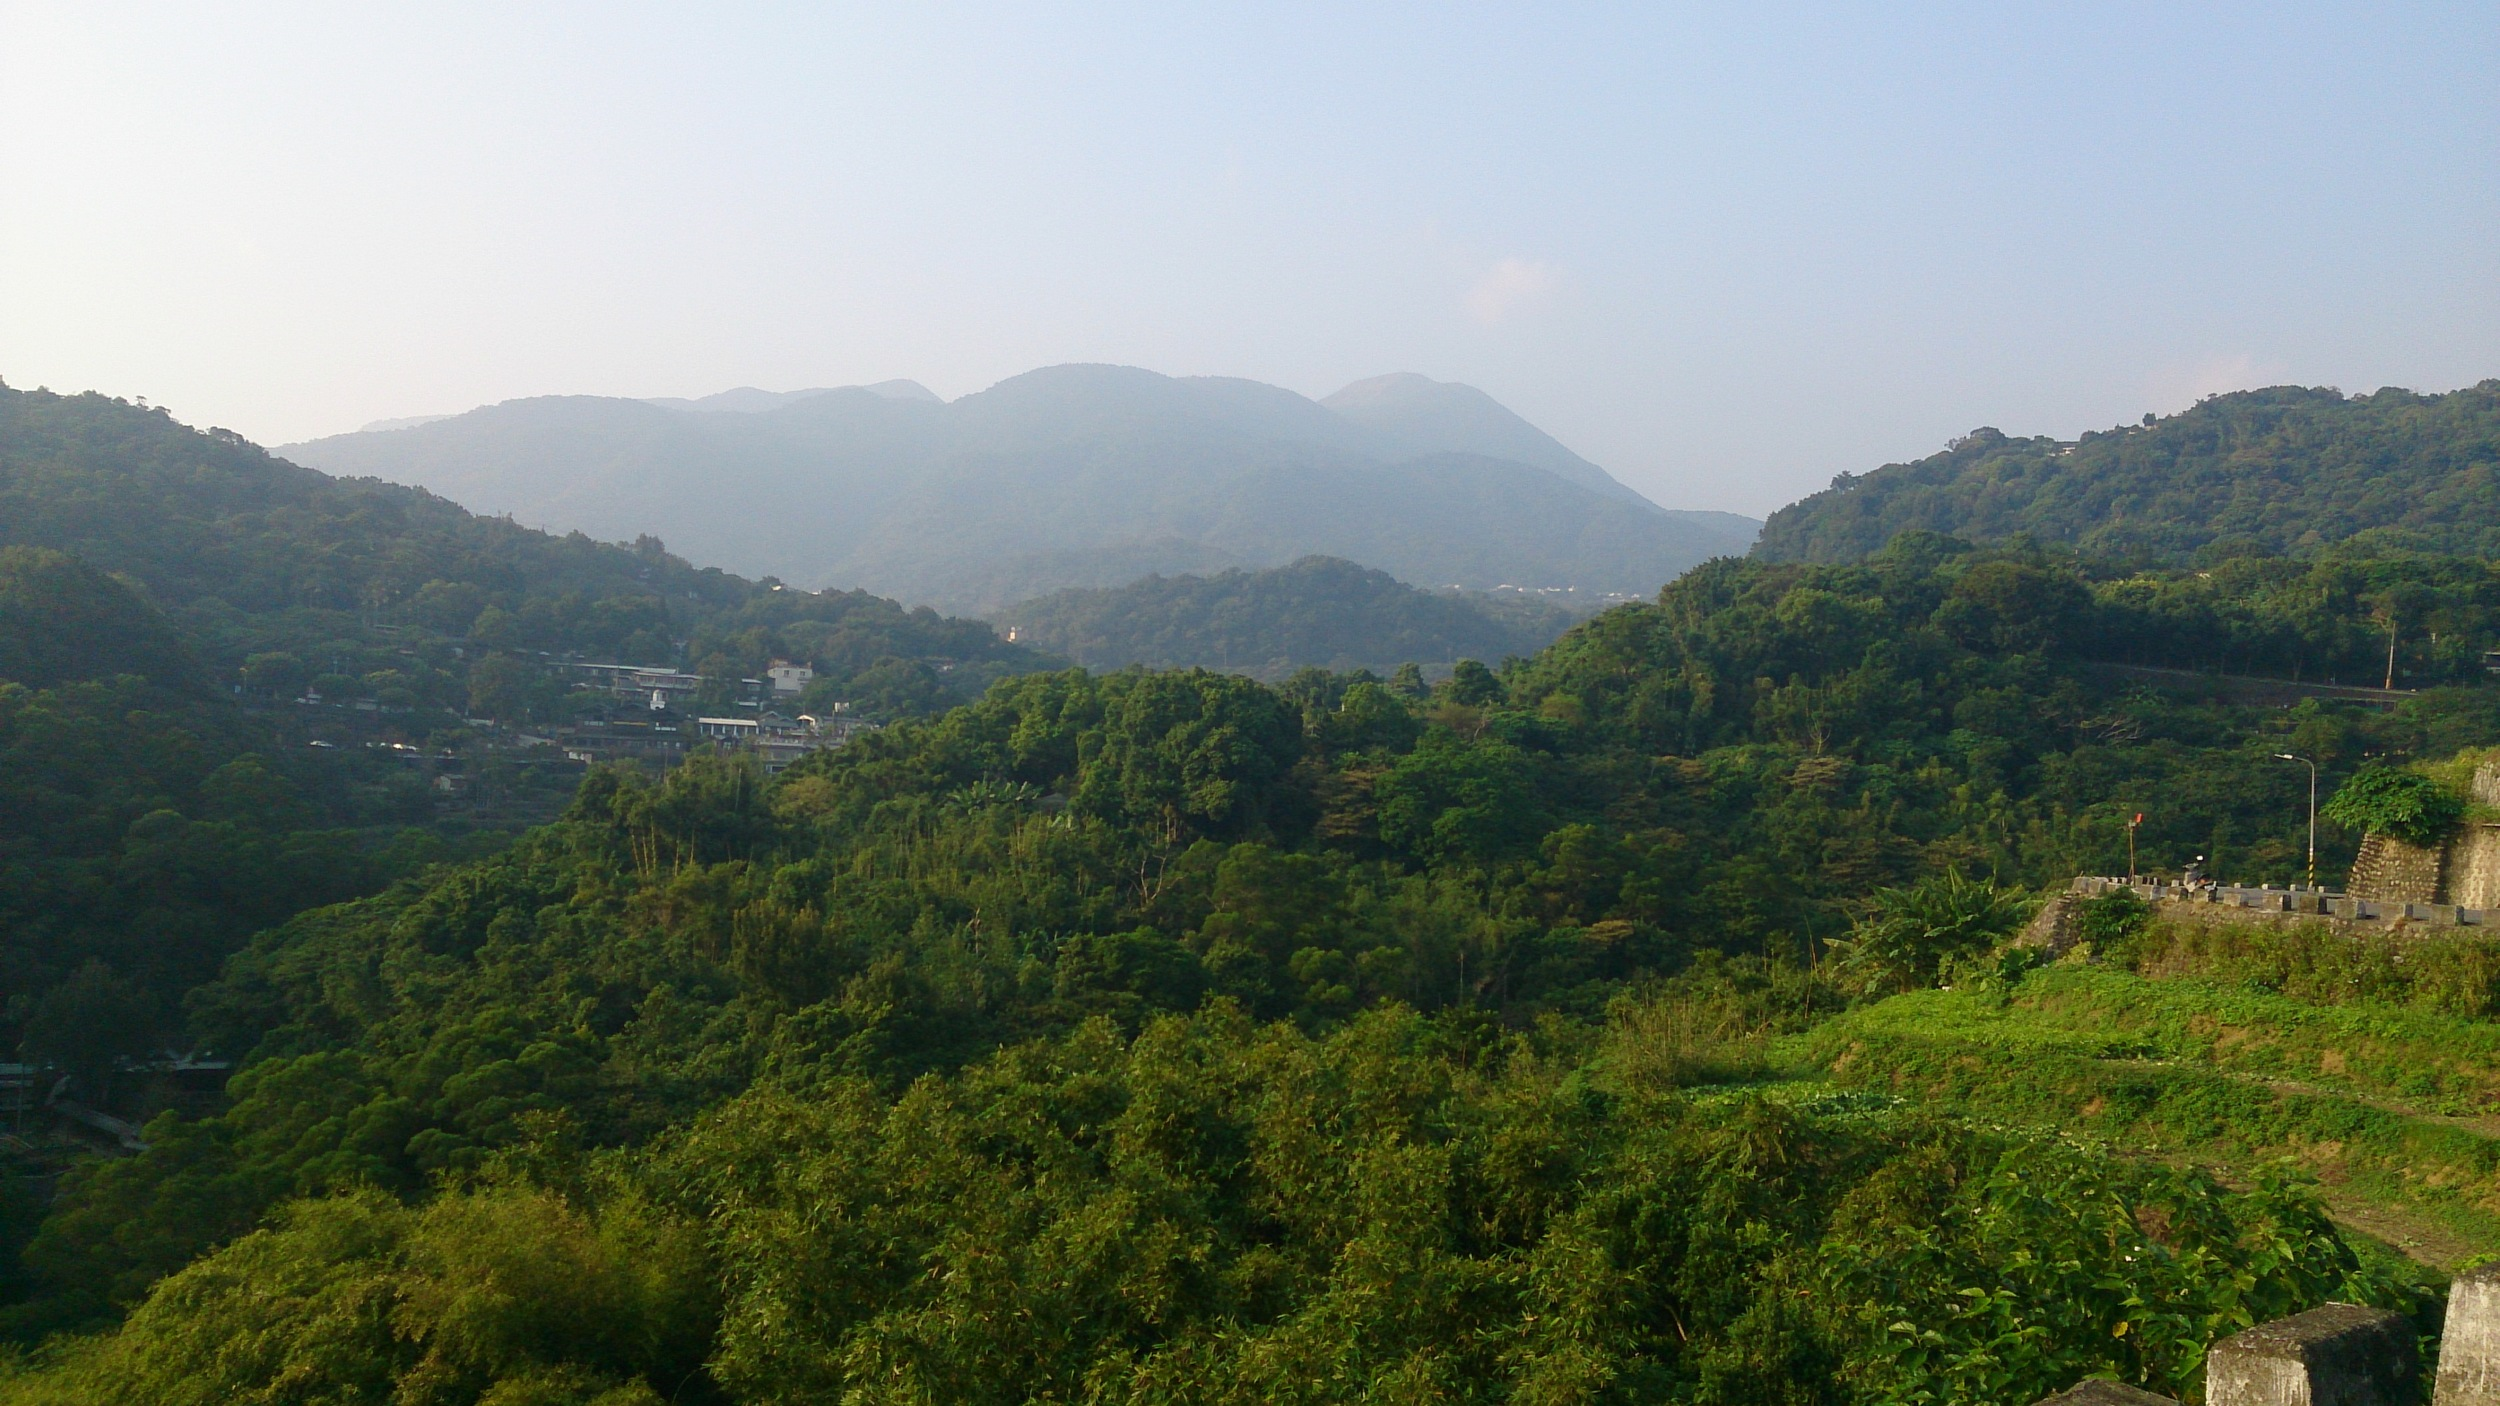 View of the Datun Volcano Group from the Tianmu Old Trail.